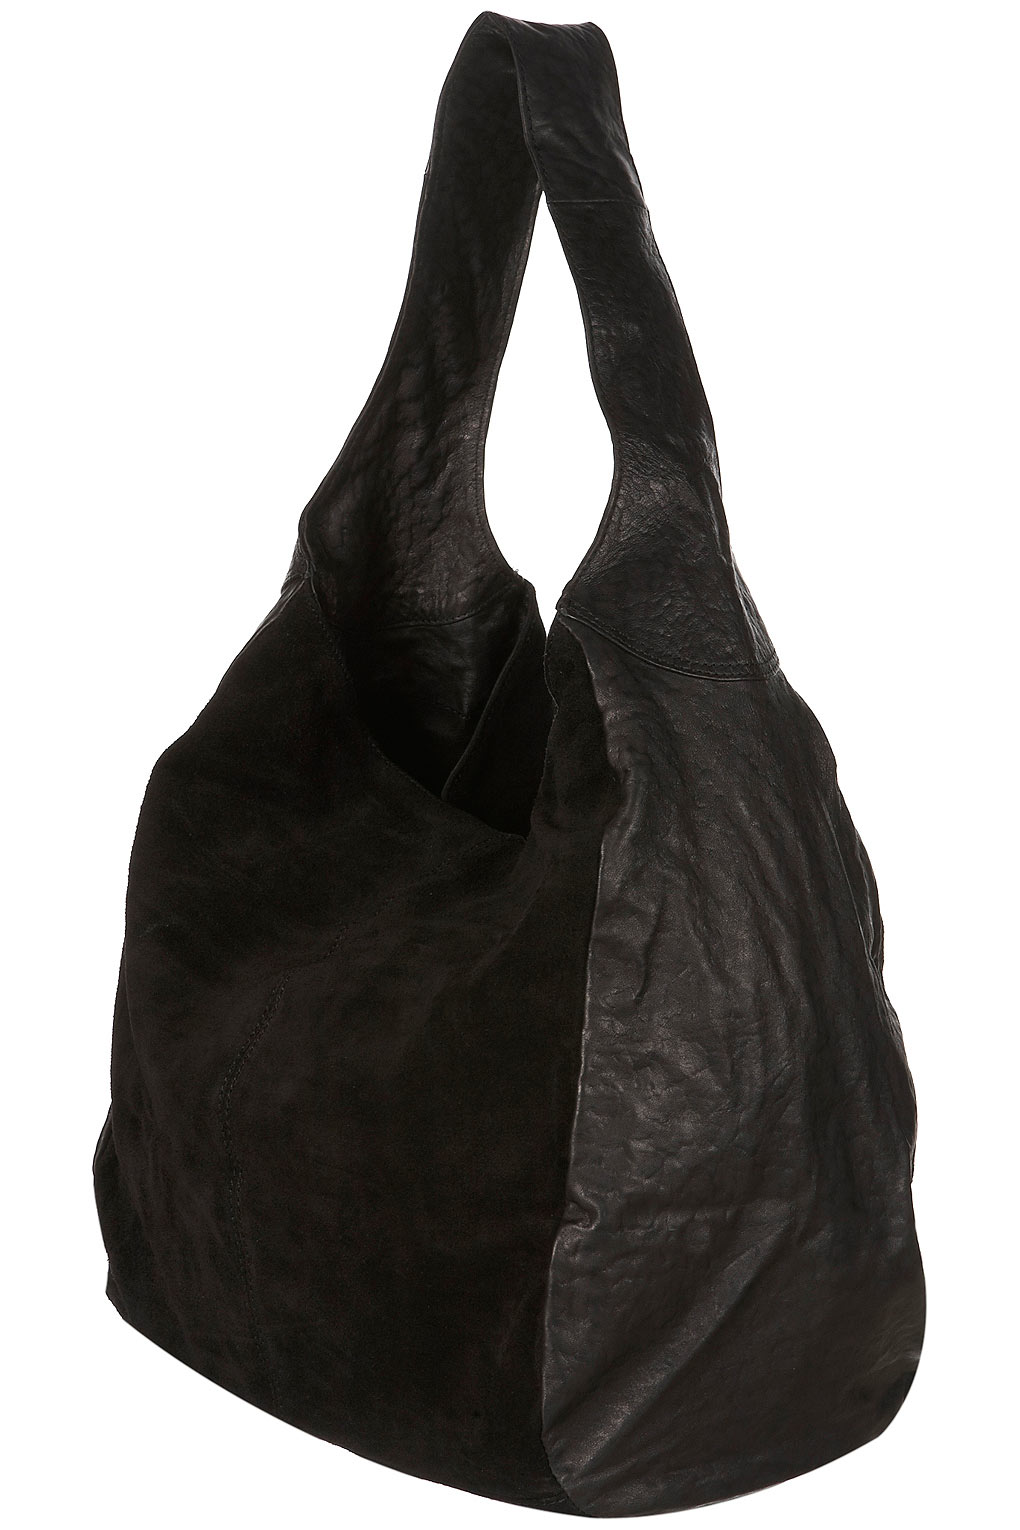 Topshop Leather and Suede Slouch Bag in Black | Lyst